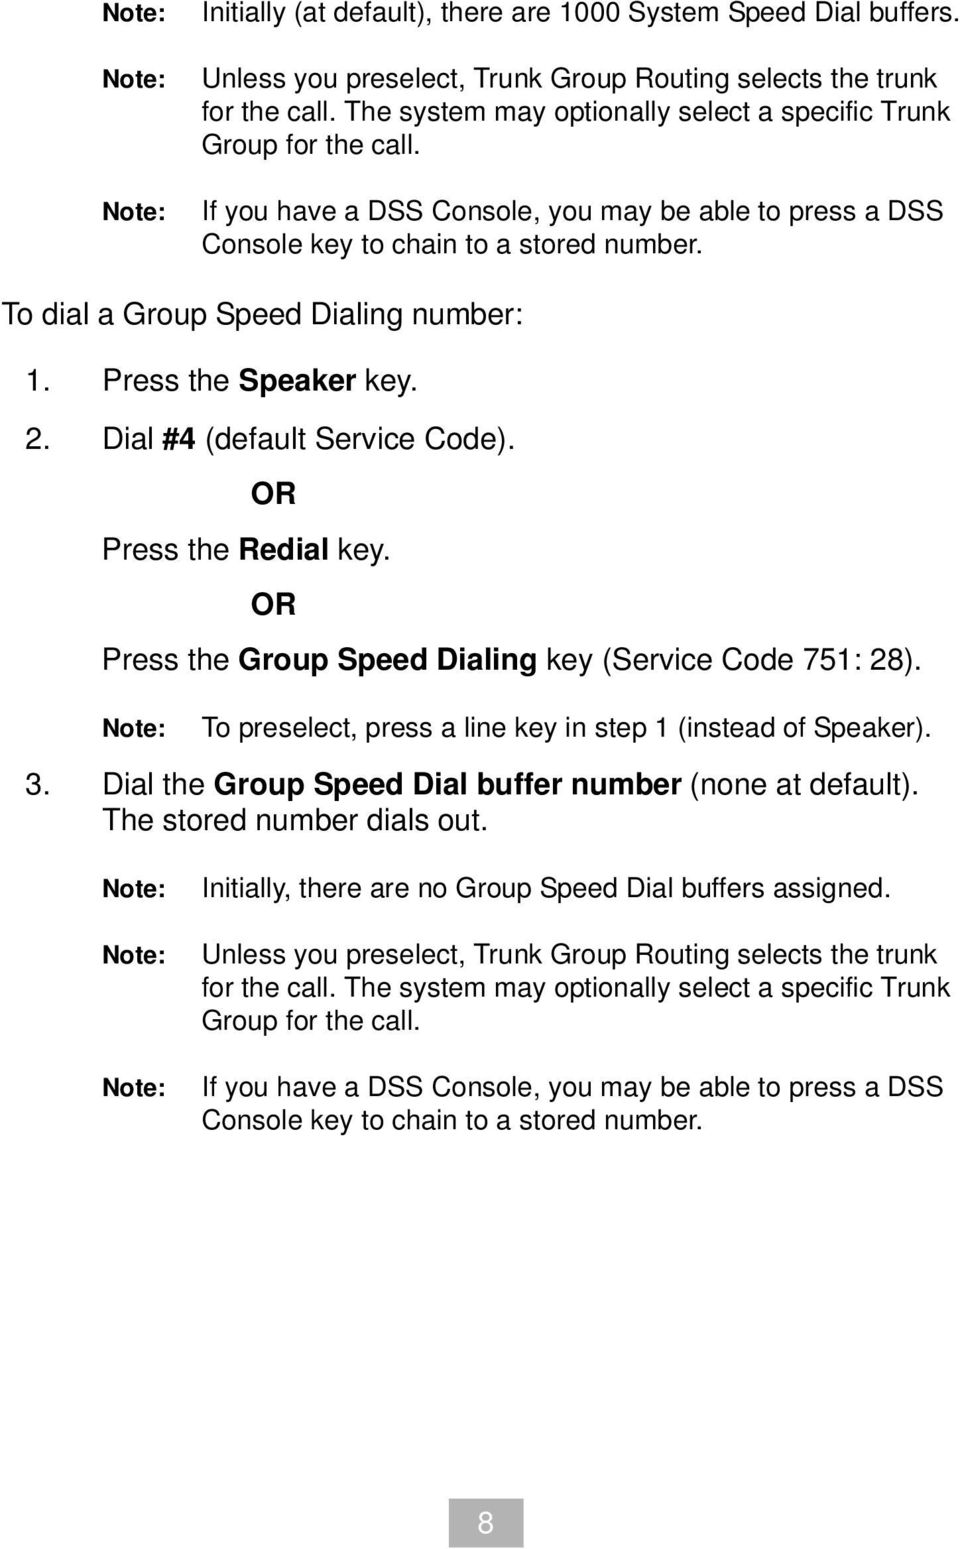 To dial a Group Speed Dialing number: 1. Press the Speaker key. 2. Dial #4 (default Service Code). OR Press the Redial key. OR Press the Group Speed Dialing key (Service Code 751: 28).